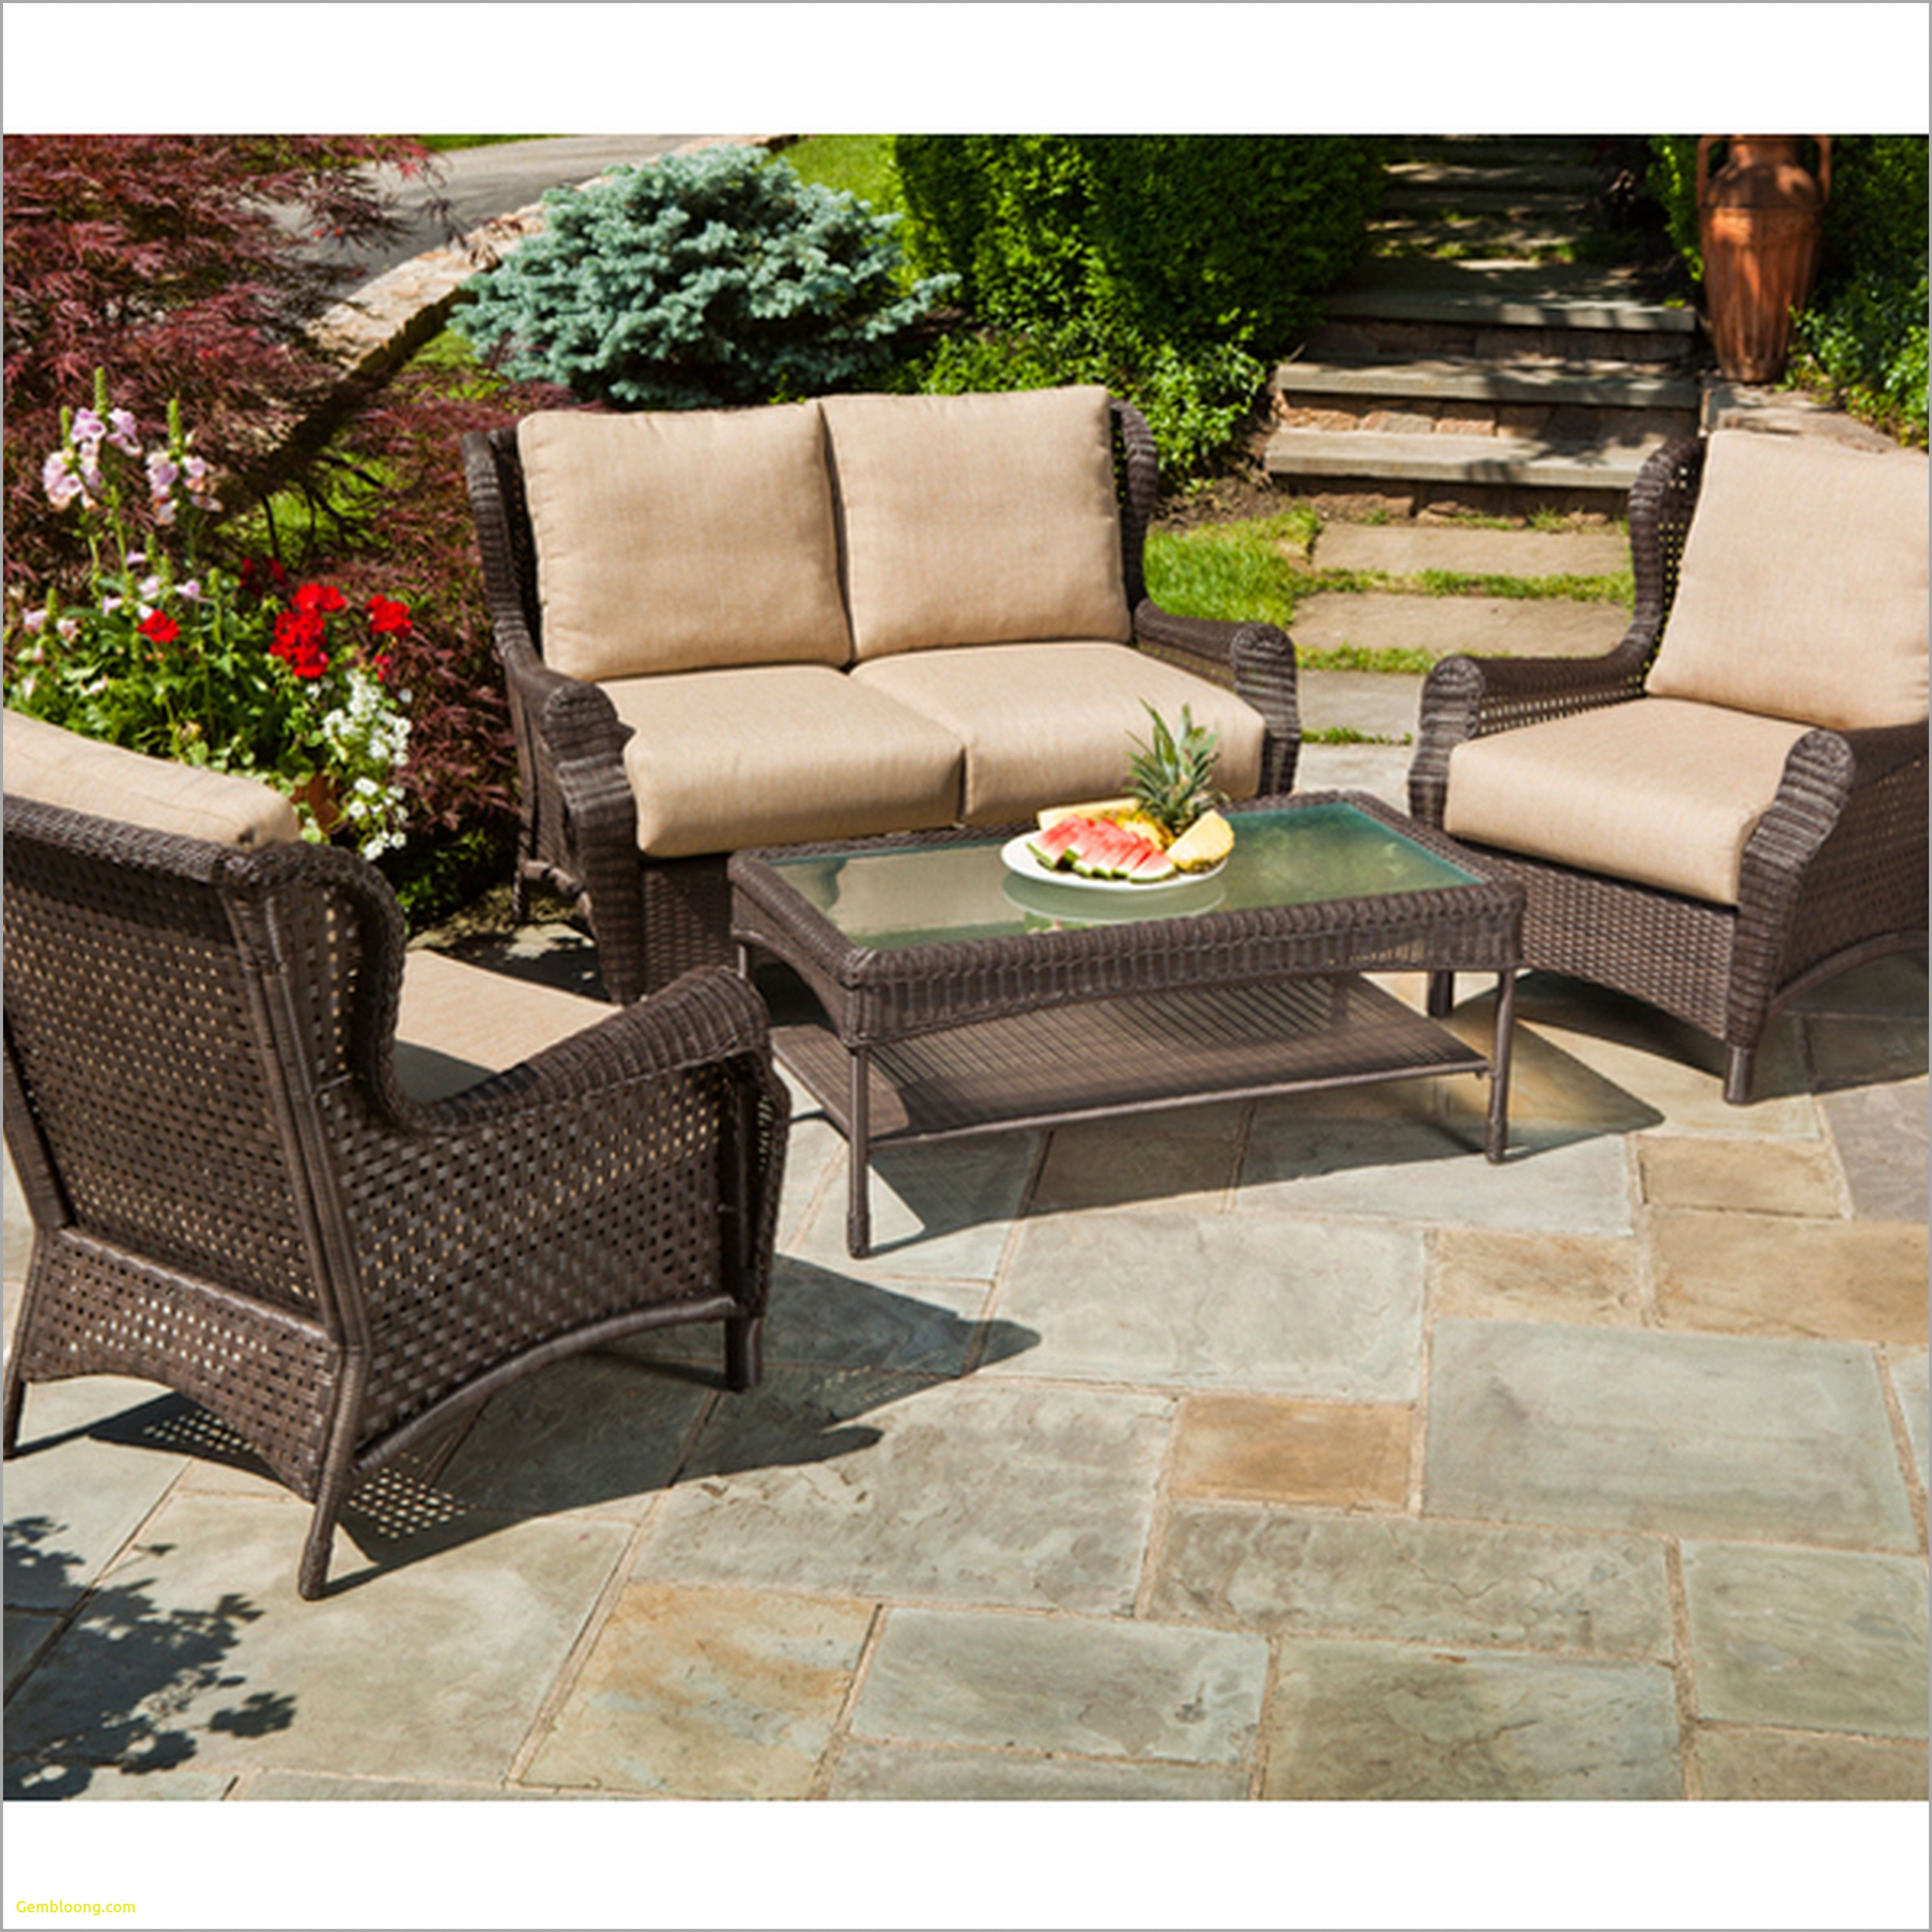 Round Table Garden Furniture Covers Check More At Http Www Arch20 Club 2018 02 08 Rou Outdoor Living Furniture Patio Furniture For Sale Kmart Patio Furniture